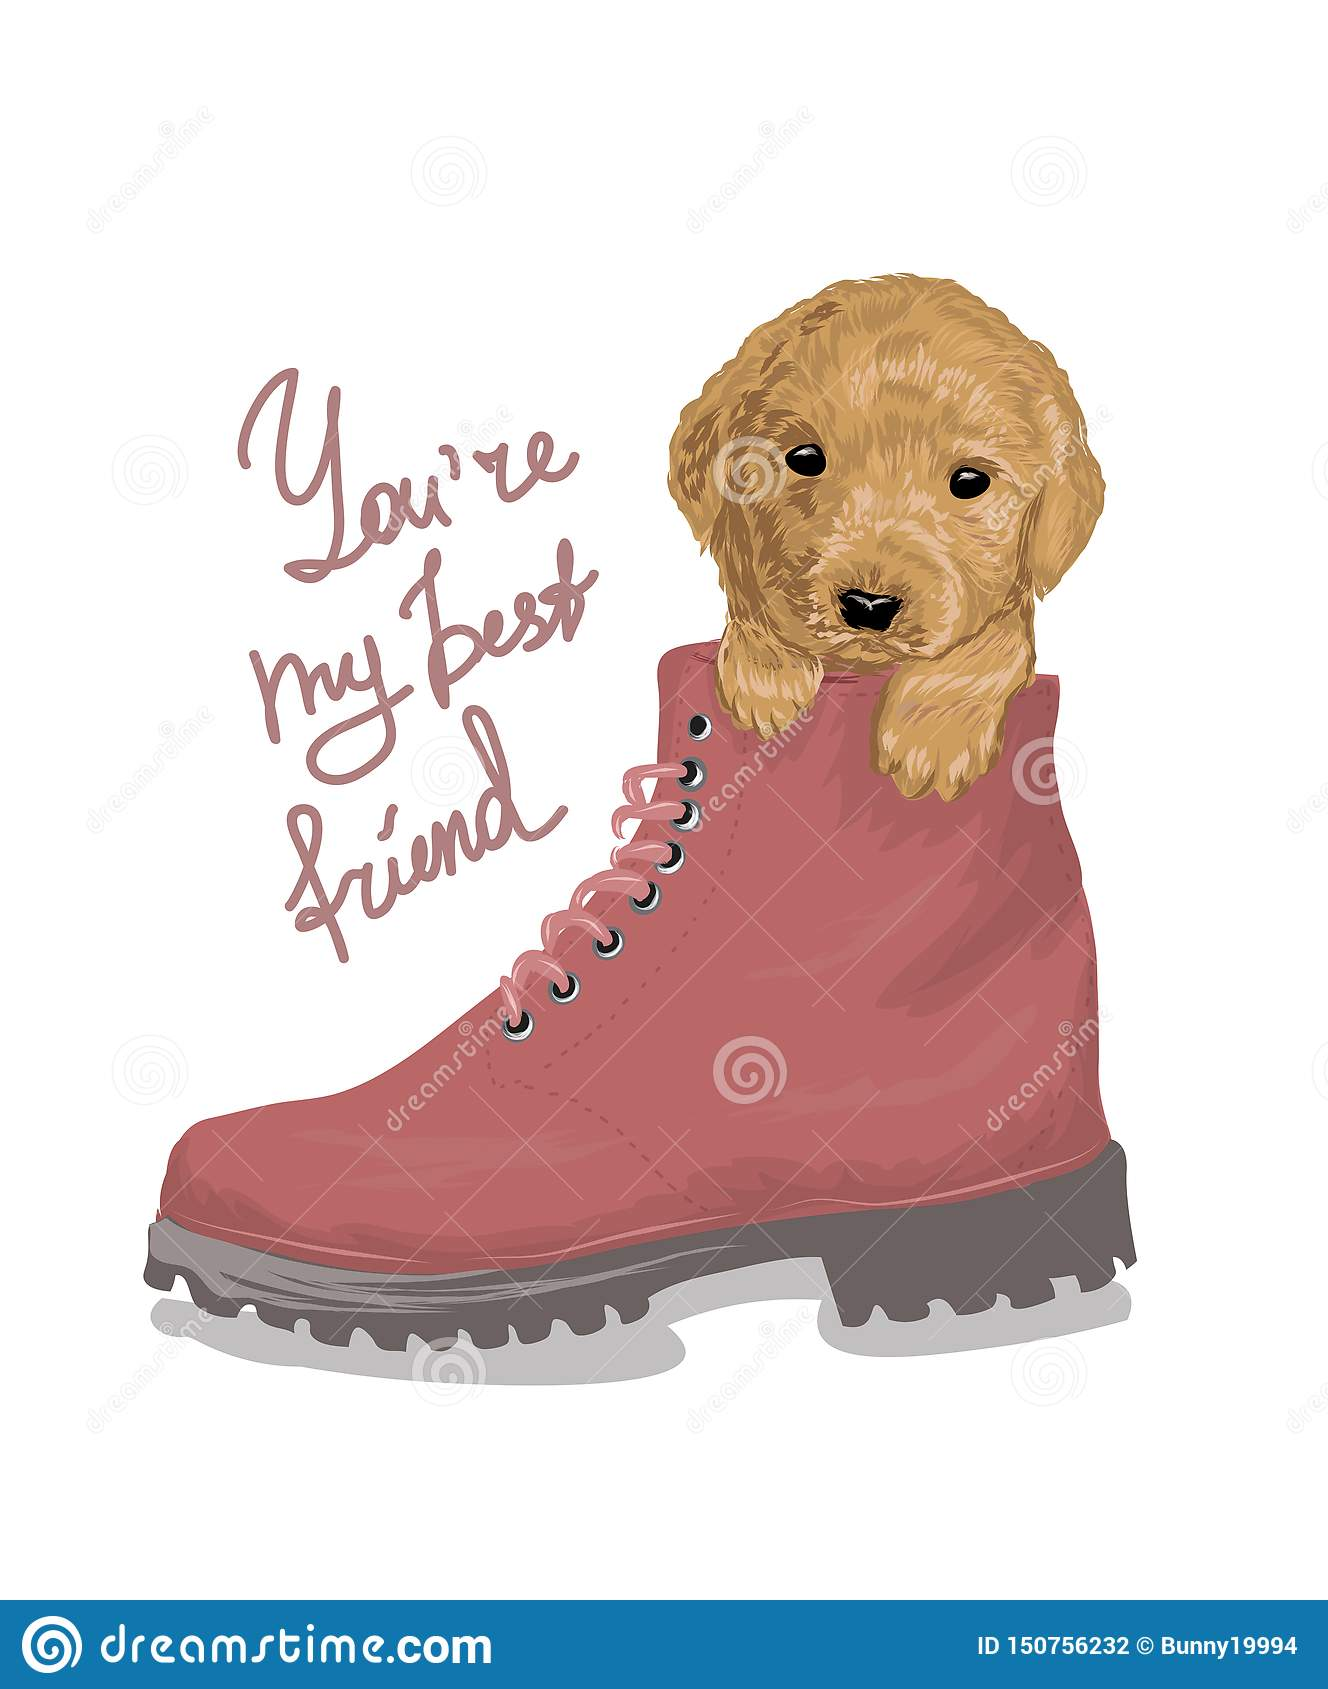 Best friend slogan with puppy in the boot illustration. Perfect for decor such as posters, wall art, tote bag, t-shirt print